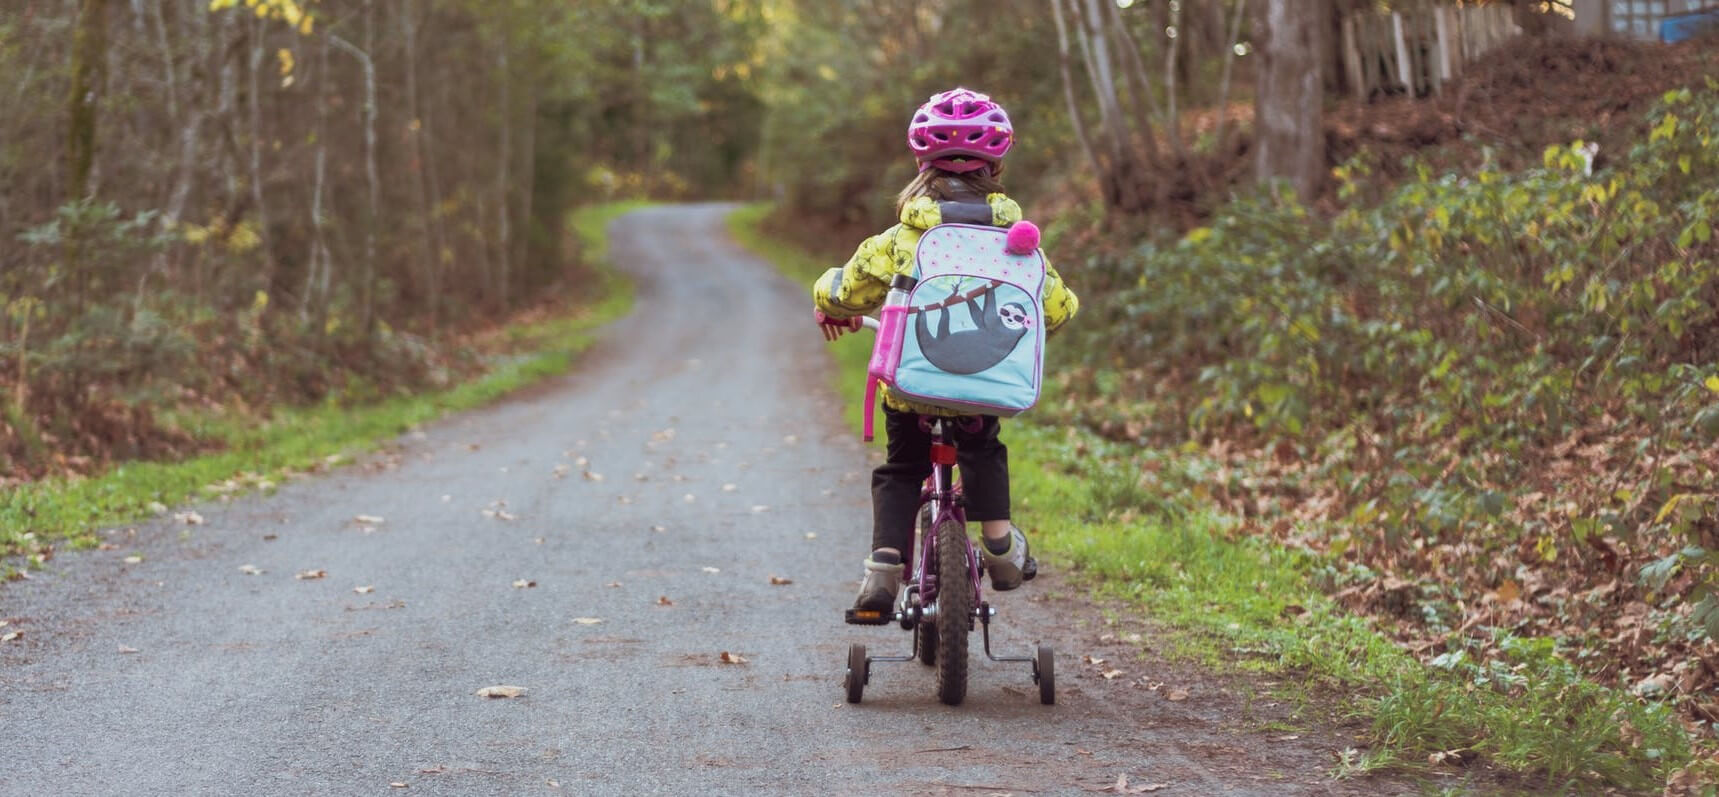 Do Heavy Schoolbags Cause Back Pain in Children? Blog